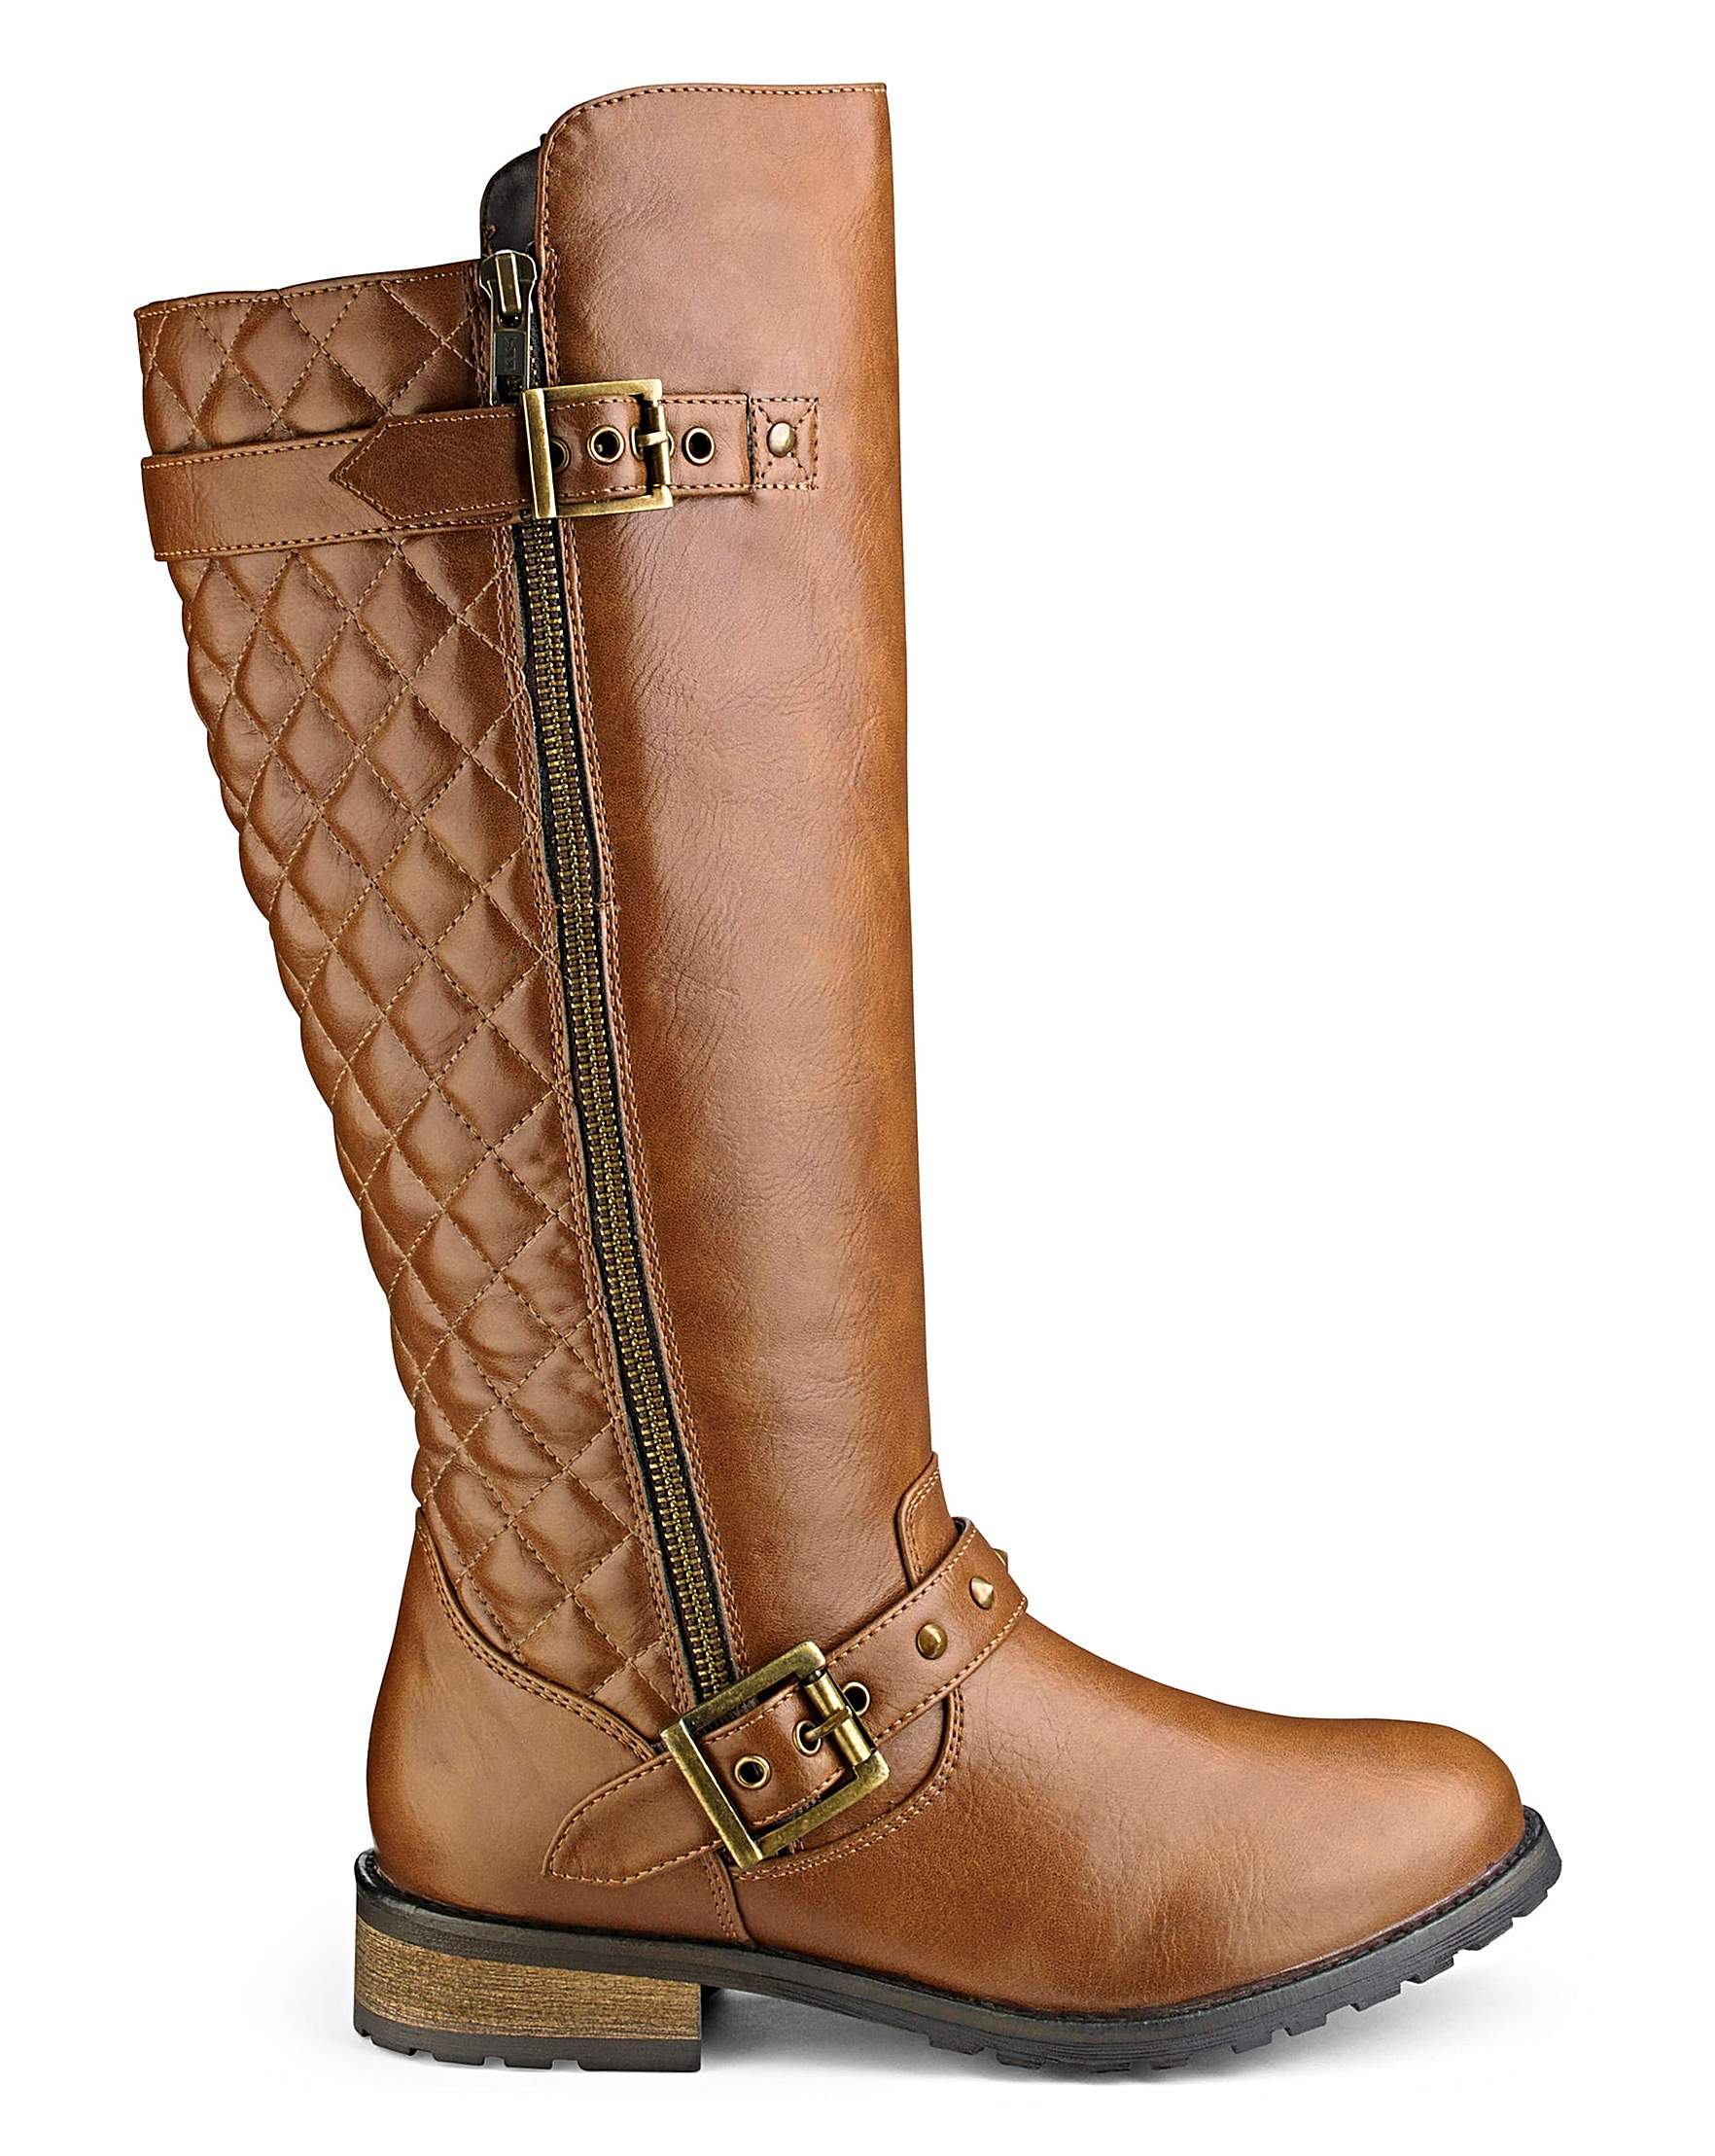 853e04ac8095 Sole Diva Quilted High Leg Boots Curvy Plus Extra Wide EEE Fit